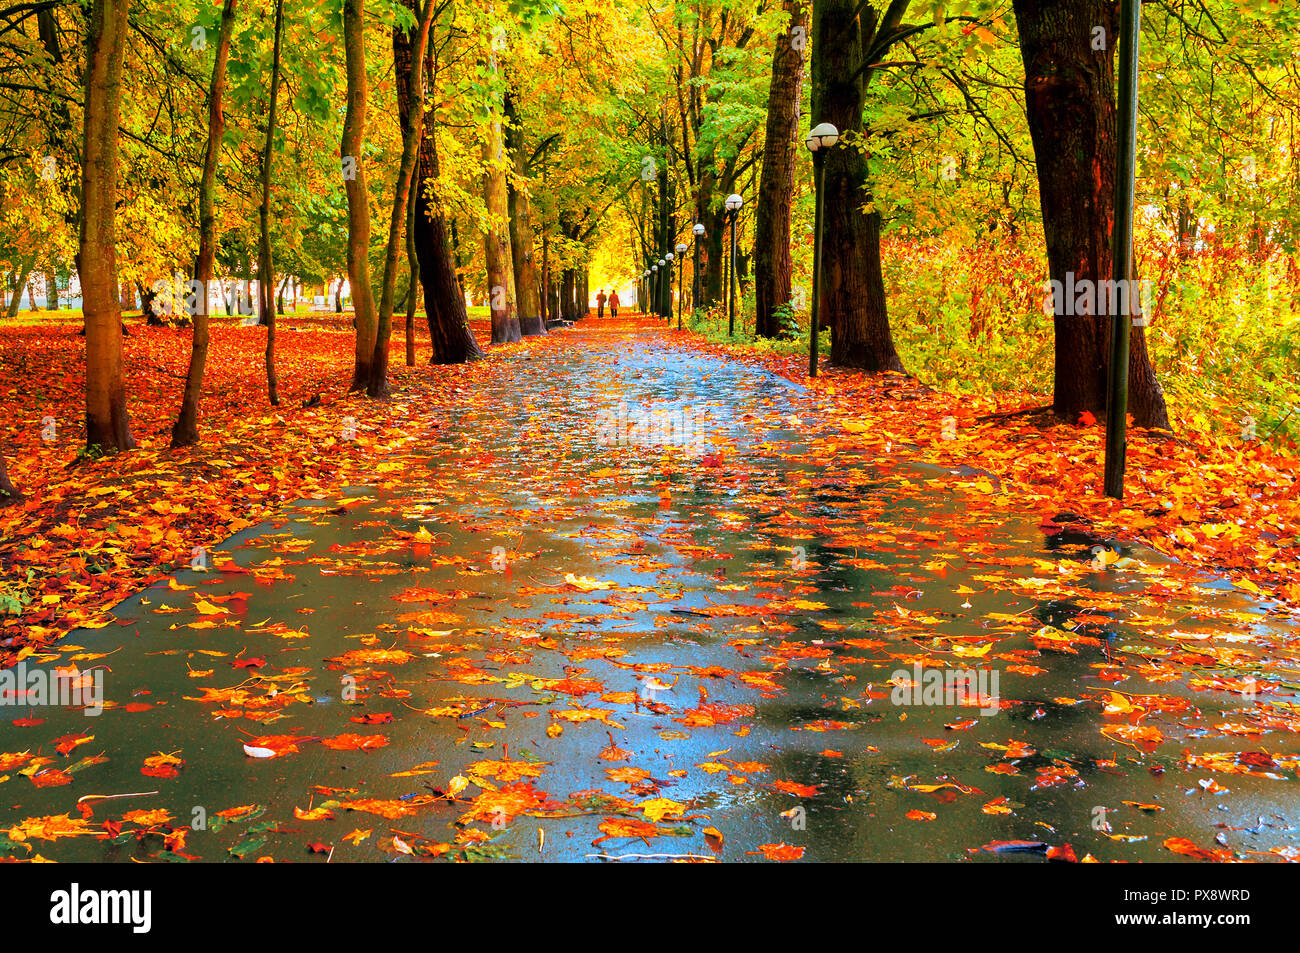 Autumn Colorful Landscape Autumn Trees With Yellow Foliage And Autumn Leaves On The Wet Asphalt Road In Park Autumn Alley After Rain Stock Photo Alamy